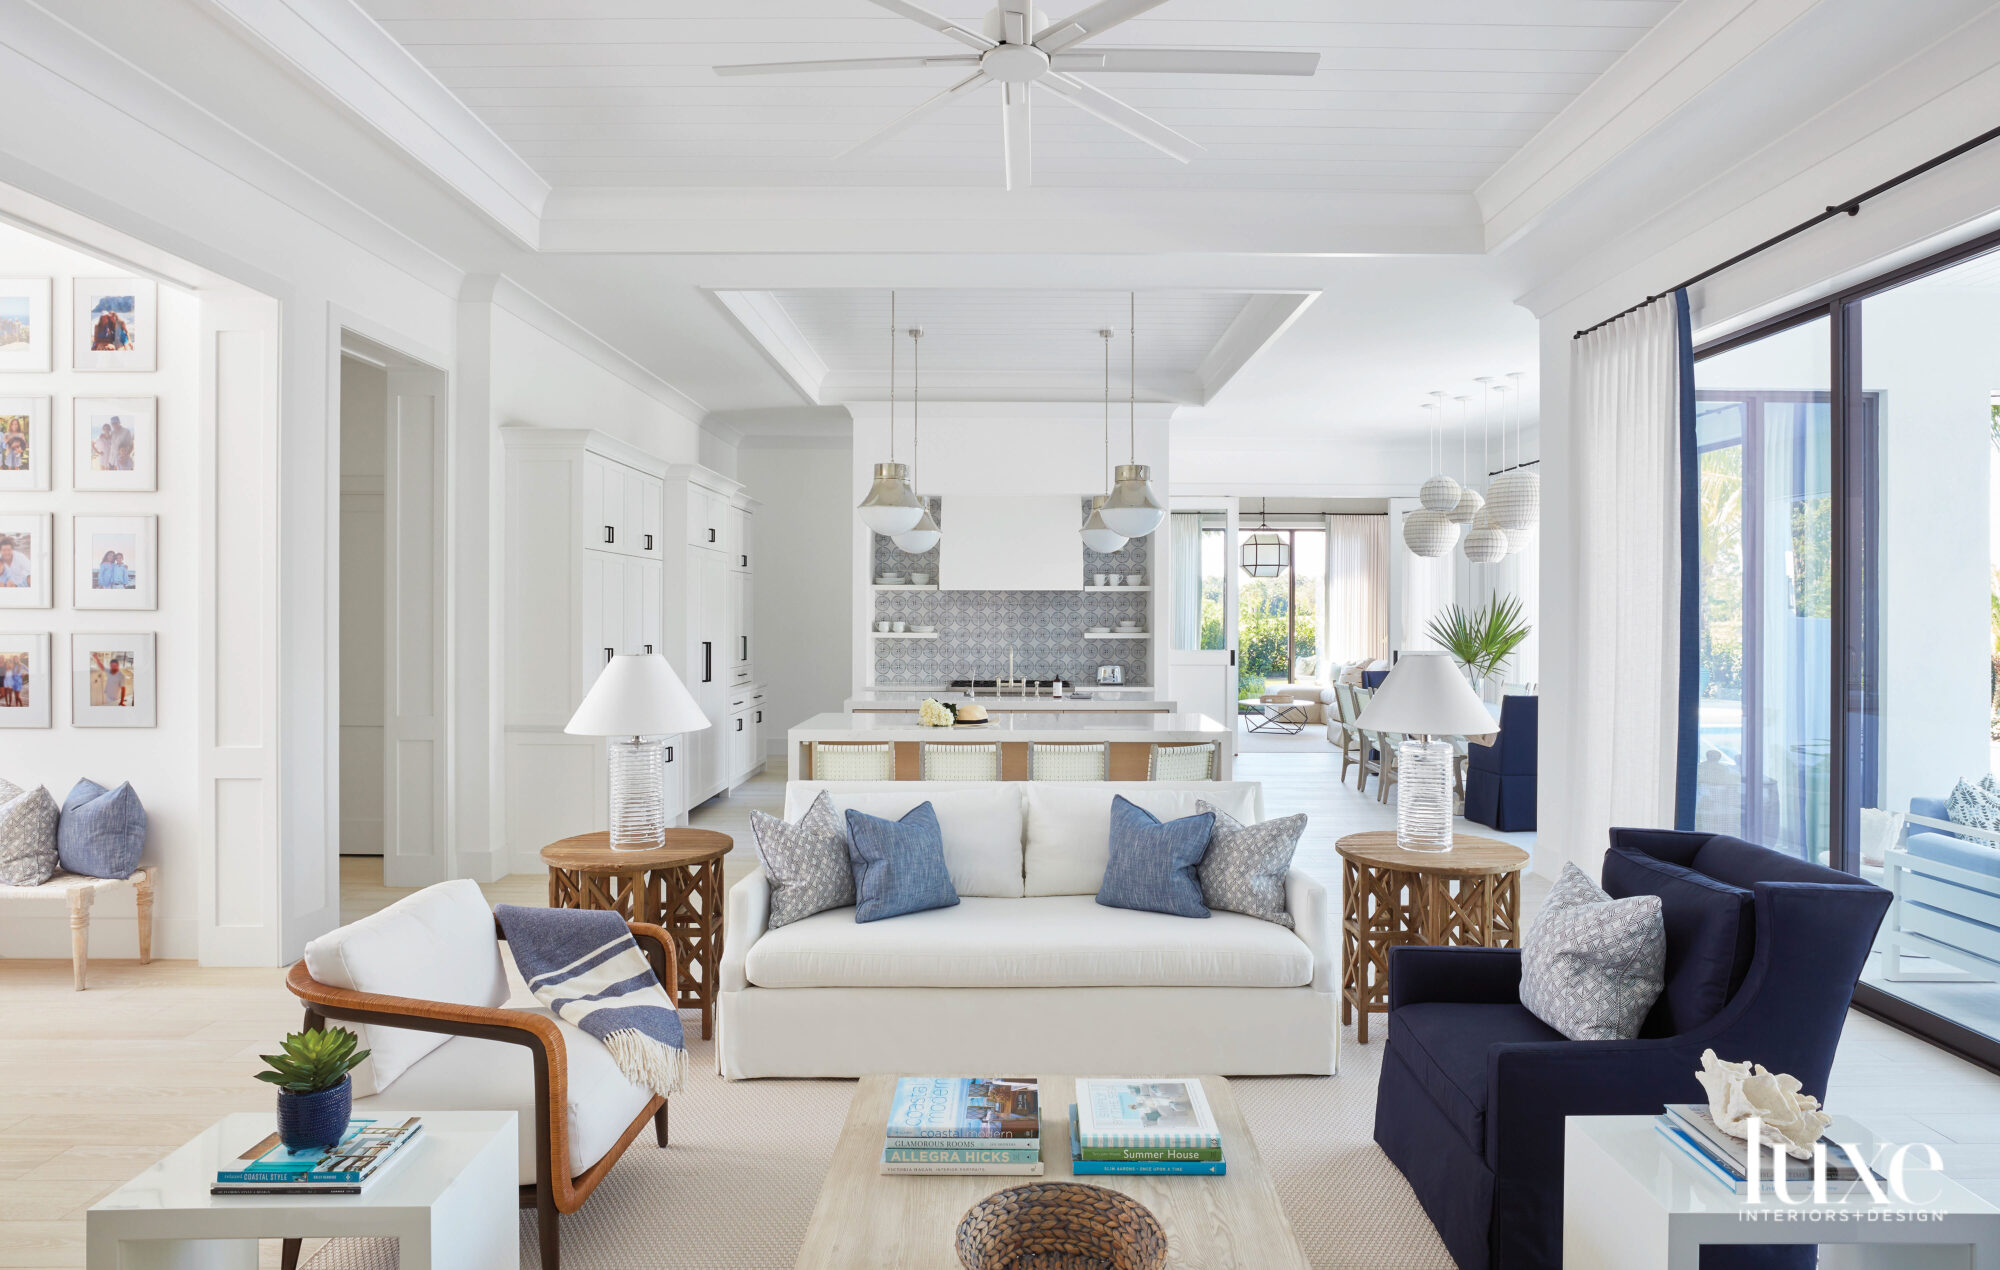 California Cool Style Comes To A Florida Home For An Active Family {California Cool Style Comes To A Florida Home For An Active Family} – English